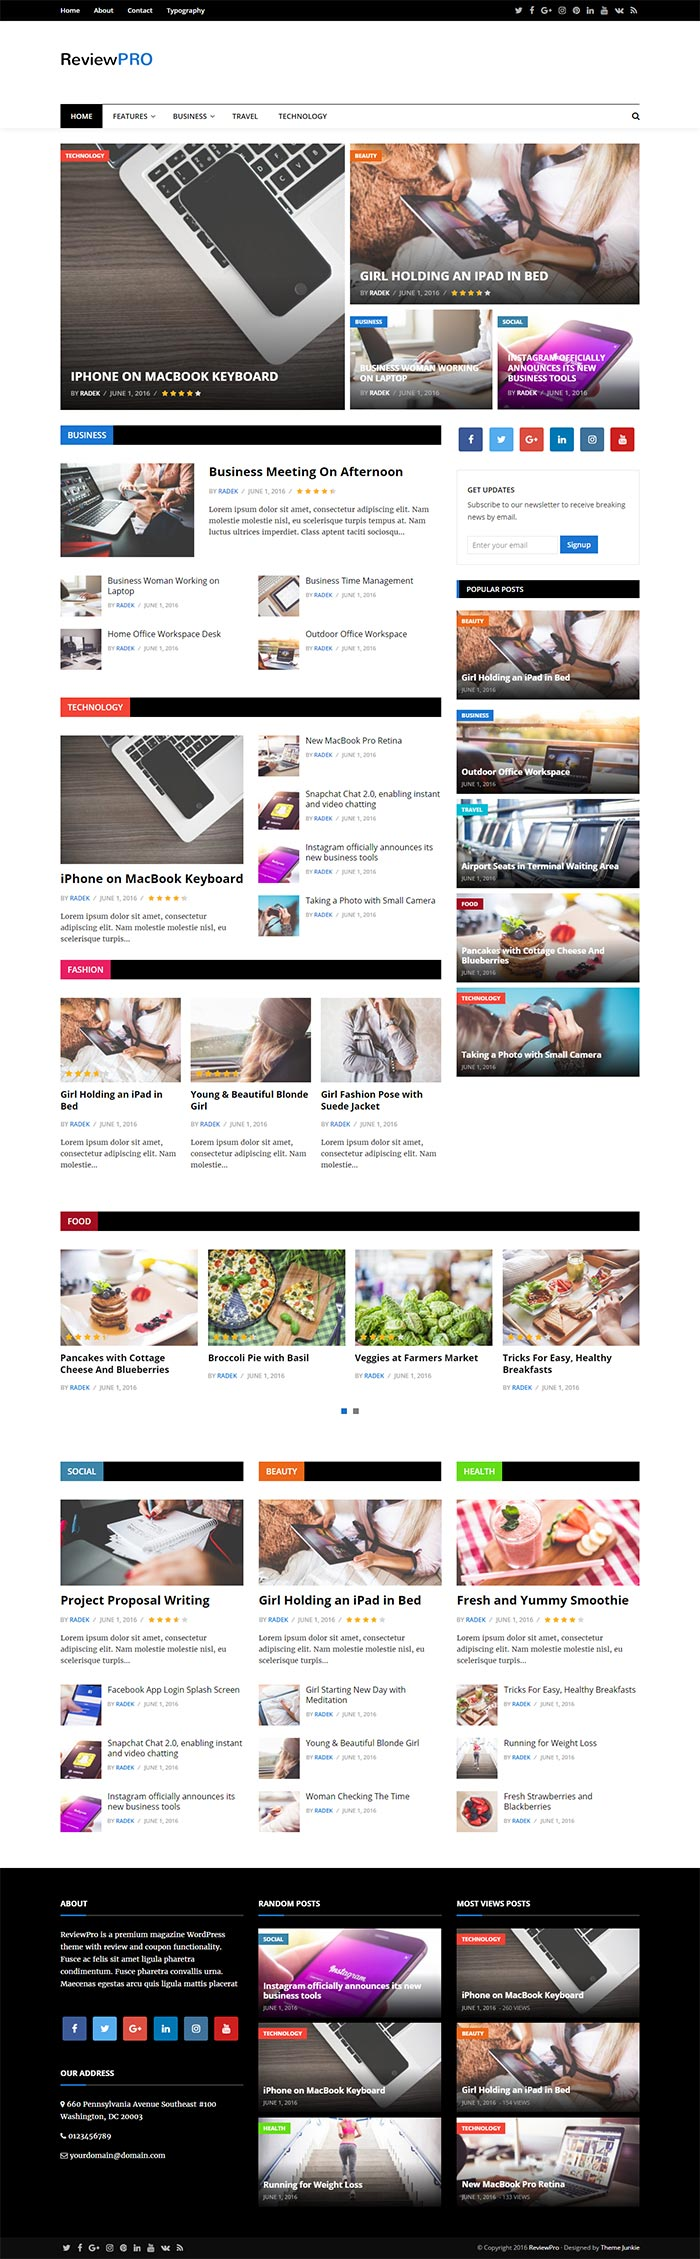 ReviewPro – A Professional Blog / Magazine WordPress Theme